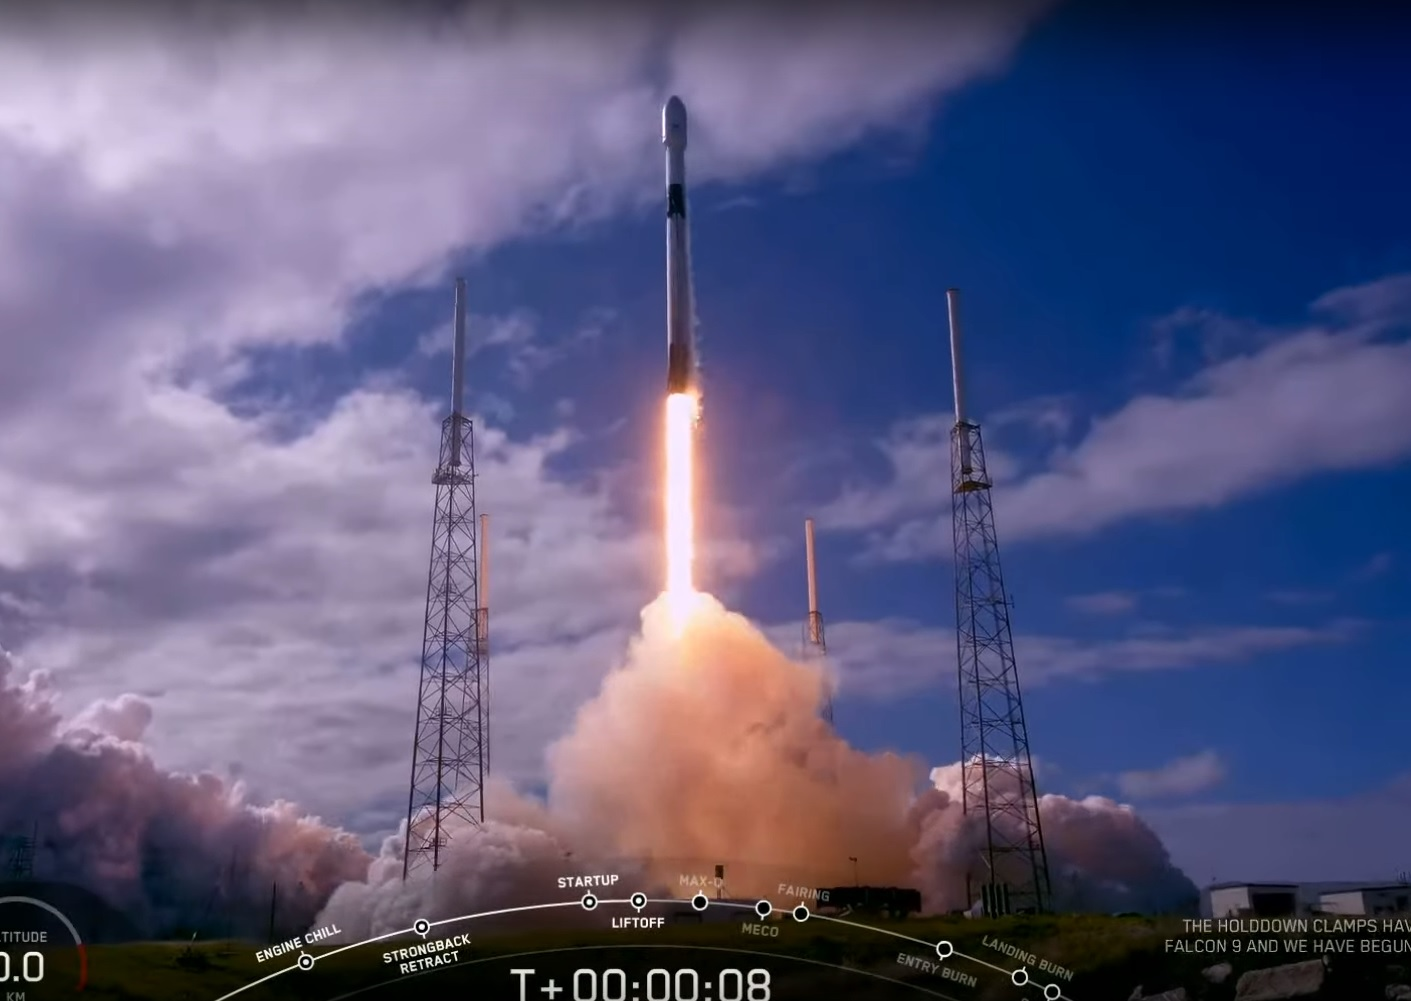 美國太空探索科技公司(SpaceX)今天把第2批共60枚小型衛星送上太空。   圖:截取自SpaceX  youtube